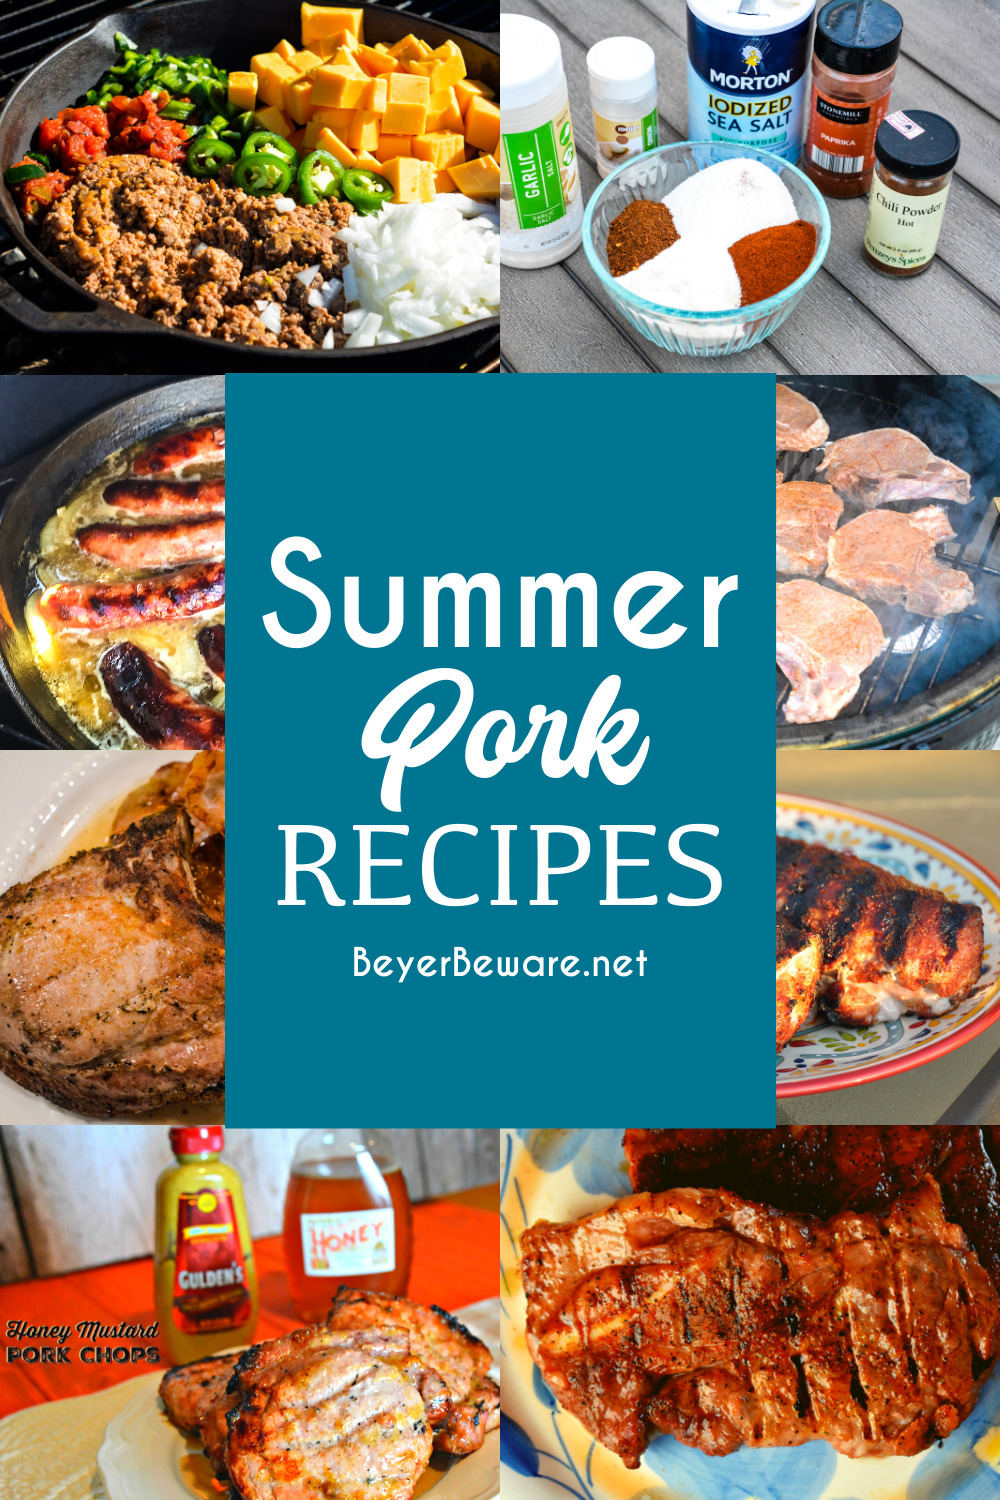 Summer Pork Recipes